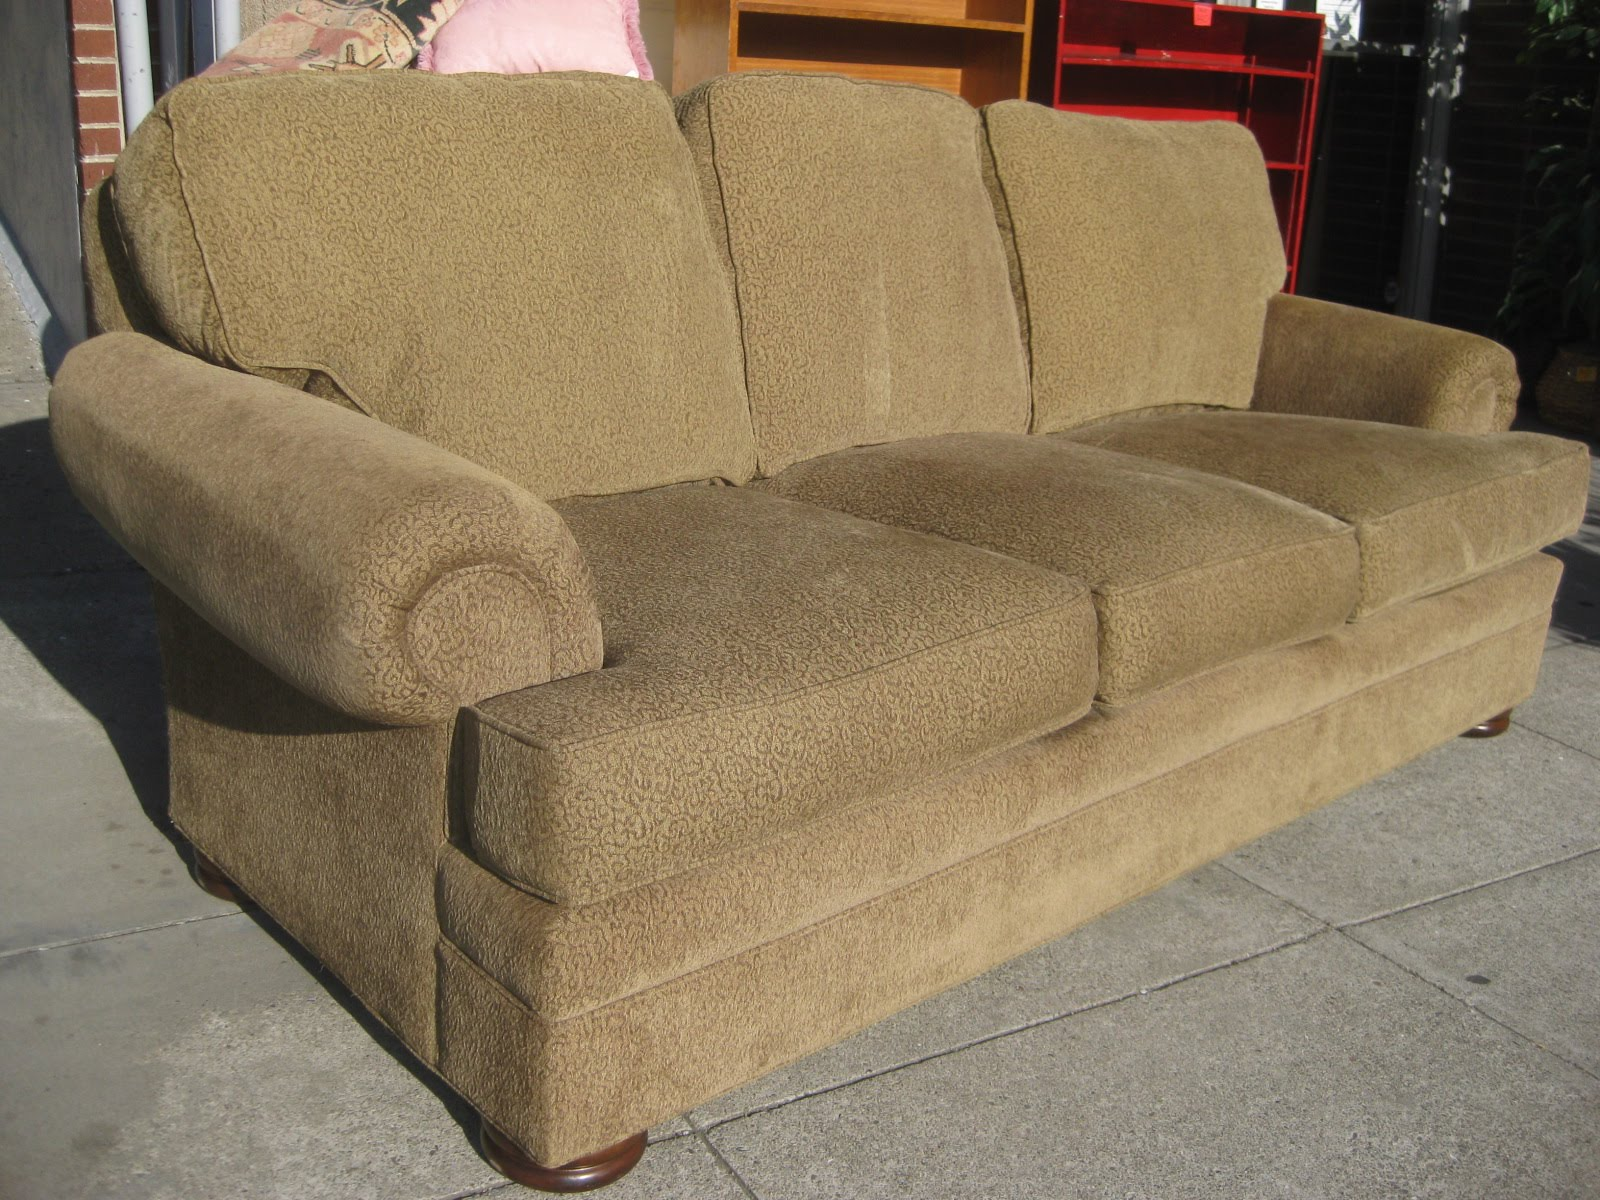 sofas thomasville hei wid furniture sharpen op sectional benjamin leather